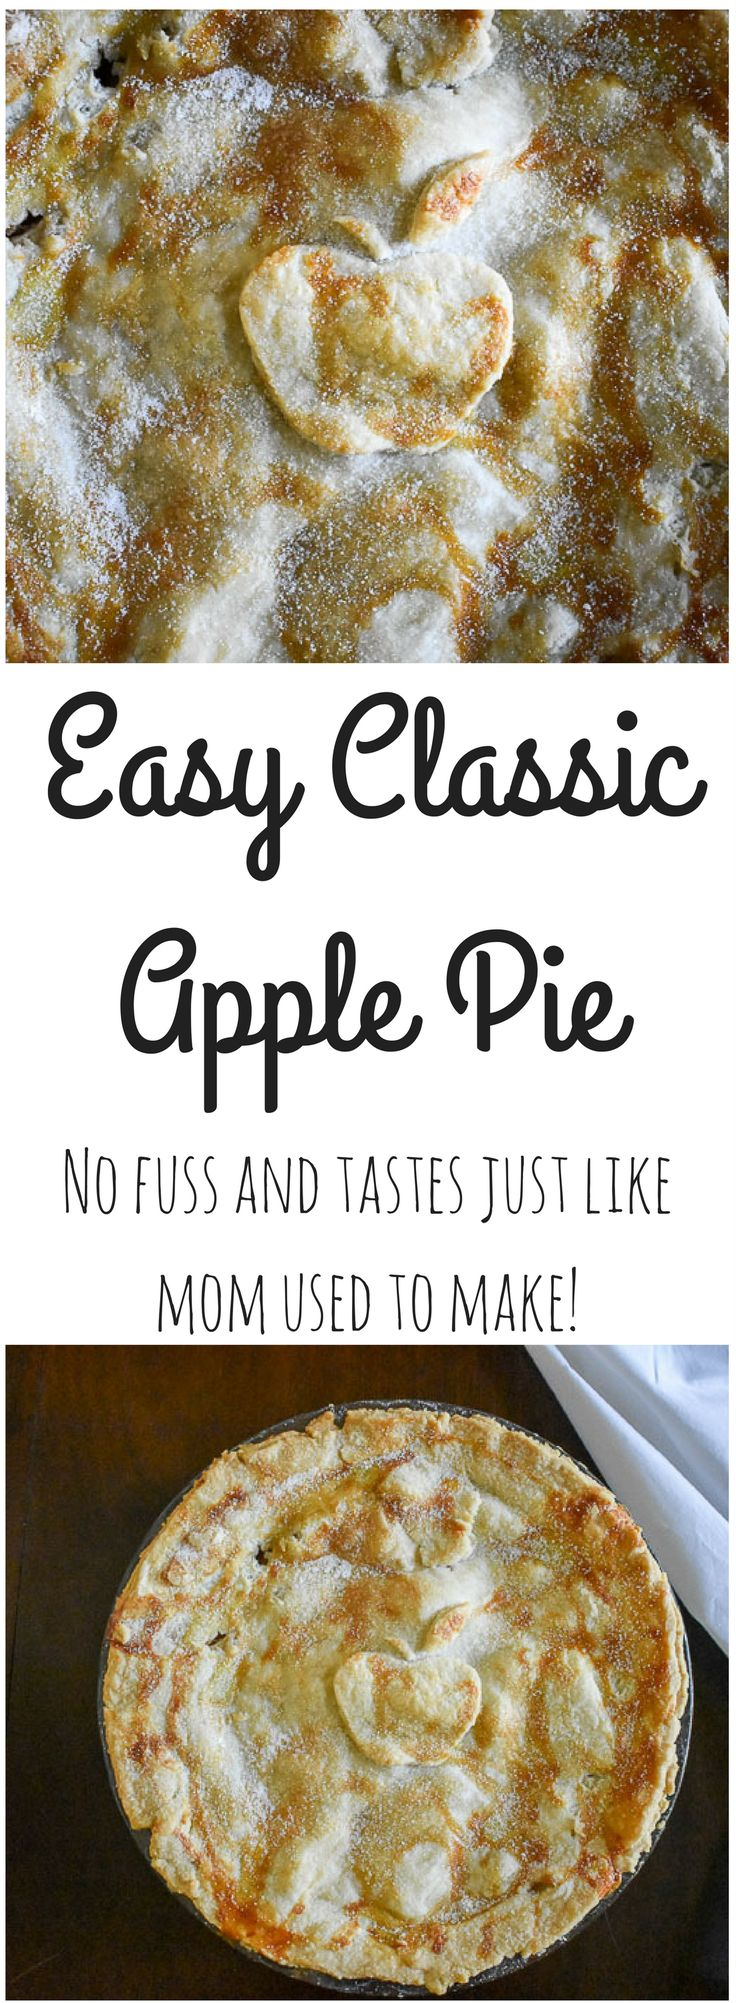 Easy classic apple pie is made with tart Granny Smith apples, warm spices, and an all-butter crust. Perfect for year-round and pretty enough for the holidays. Recipe by Dash of Jazz